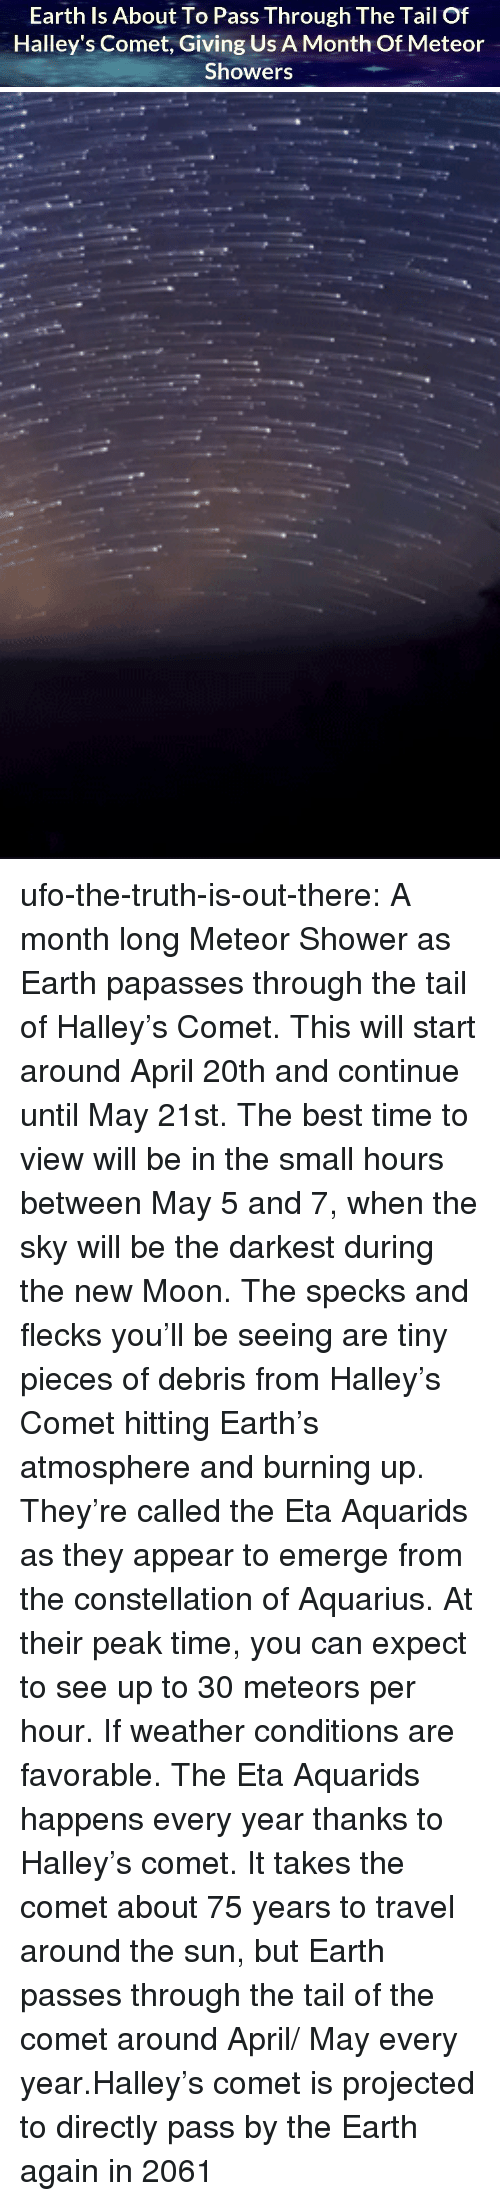 April 20th: Earth Is About To Pass Through The Tail Of  Halley's Comet, Giving Us A Month Of Meteor  Showers ufo-the-truth-is-out-there: A month long Meteor Shower as Earth papasses through the tail of Halley's Comet. This will start around April 20th and continue until May 21st. The best time to view will be in the small hours between May 5 and 7, when the sky will be the darkest during the new Moon. The specks and flecks you'll be seeing are tiny pieces of debris from Halley's Comet hitting Earth's atmosphere and burning up. They're called the Eta Aquarids as they appear to emerge from the constellation of Aquarius. At their peak time, you can expect to see up to 30 meteors per hour. If weather conditions are favorable. The Eta Aquarids happens every year thanks to Halley's comet. It takes the comet about 75 years to travel around the sun, but Earth passes through the tail of the comet around April/ May every year.Halley's comet is projected to directly pass by the Earth again in 2061